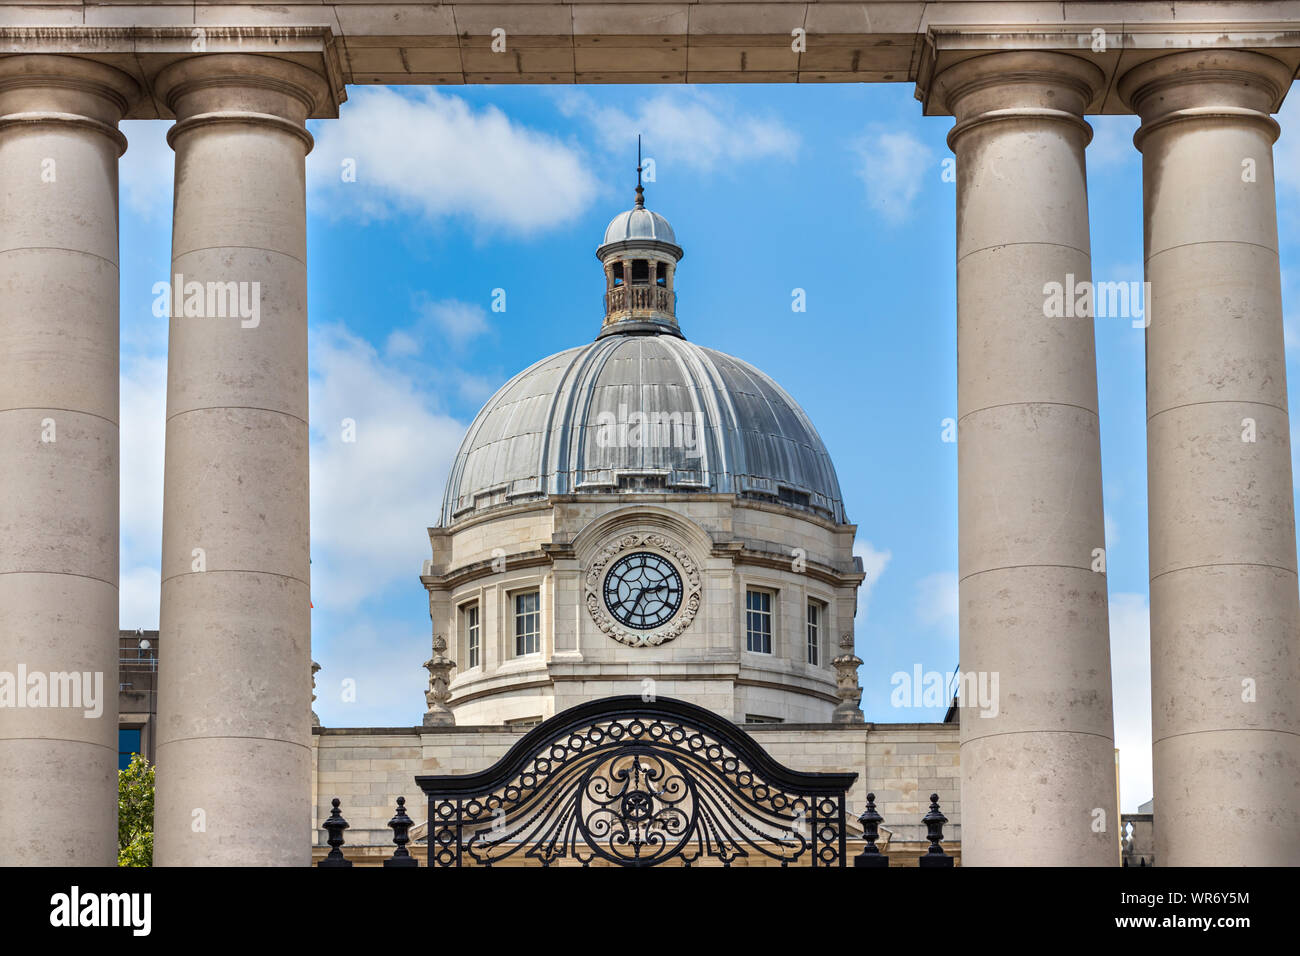 The clock and the dome of the Government Buildings - Tithe an Rialtais in Dublin, Ireland. Stock Photo